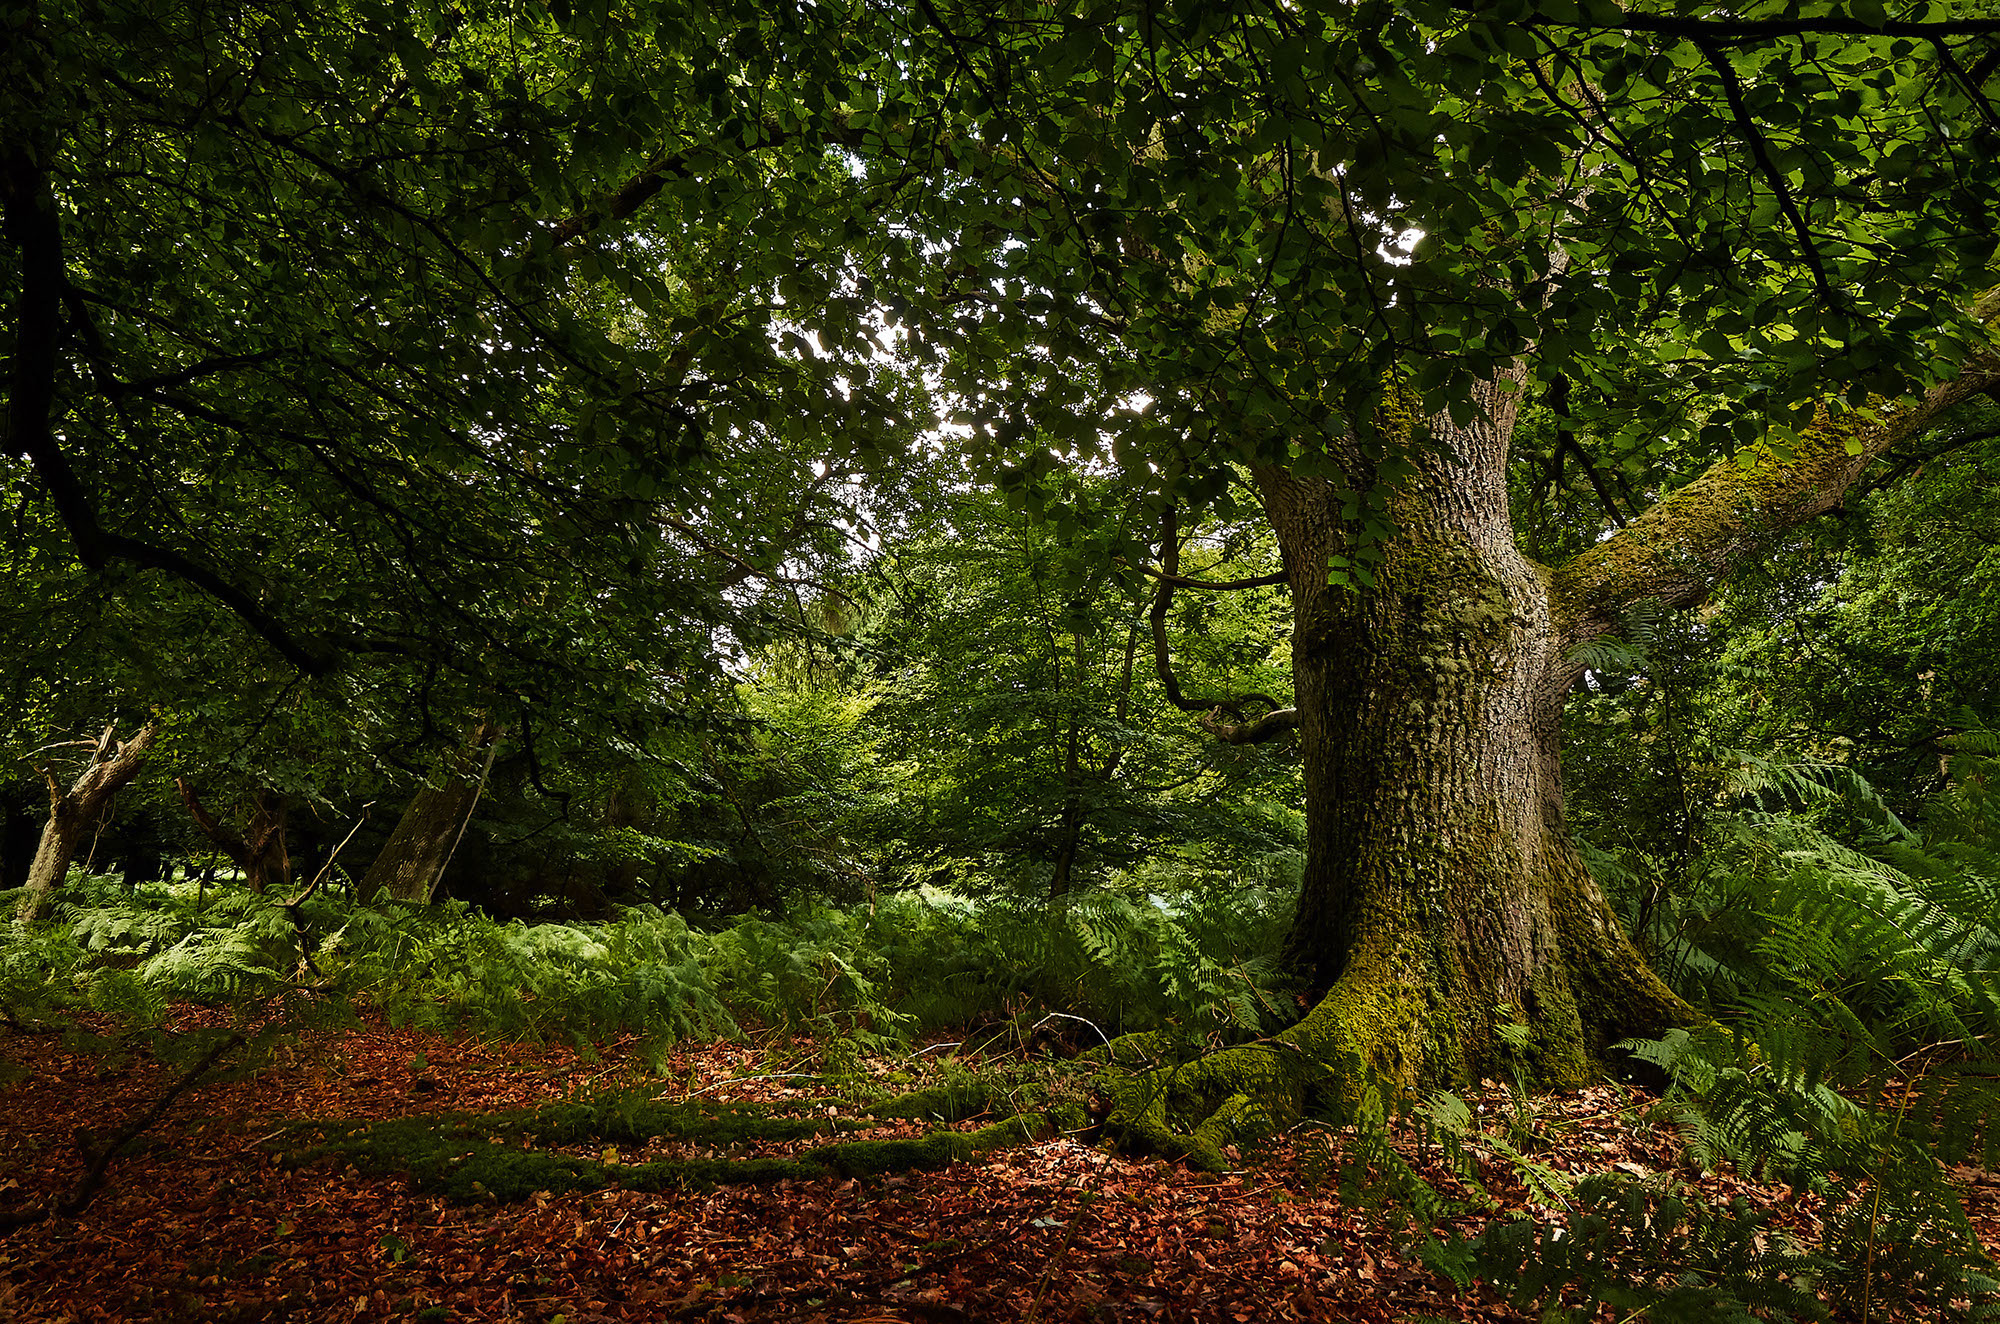 oak-tree-new-forest-national-park